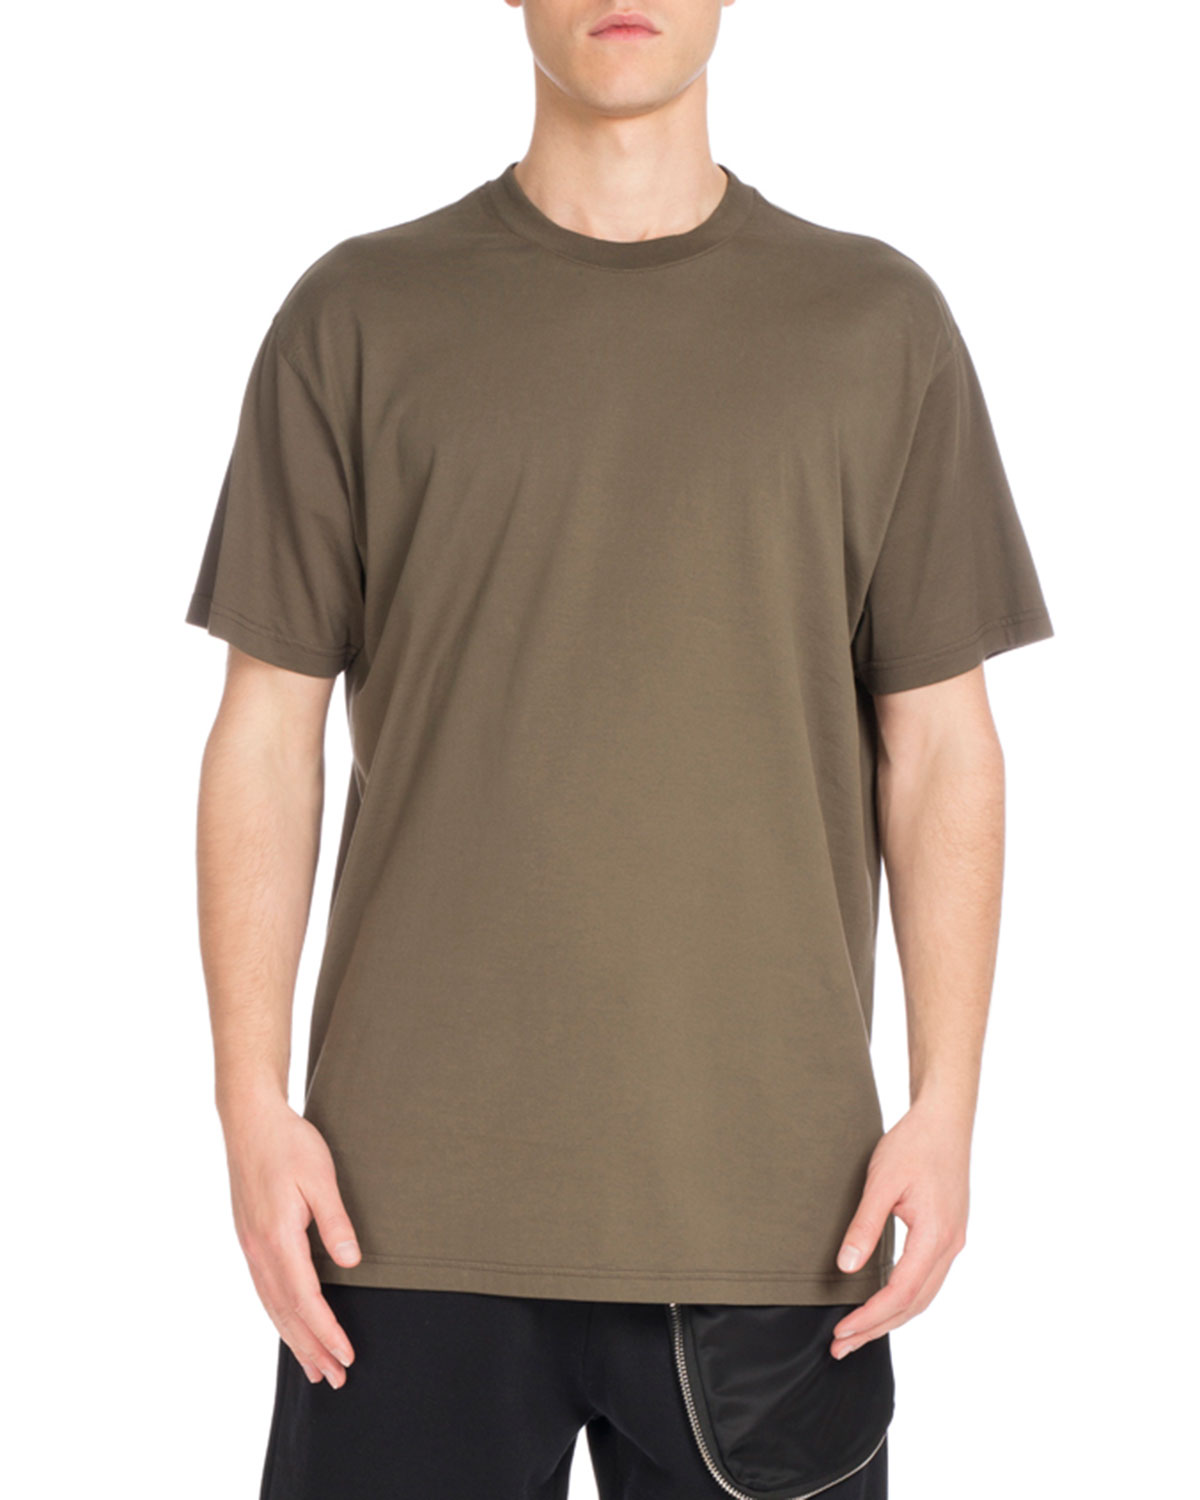 Columbian-Fit Logo-Embroidered T-Shirt, Khaki